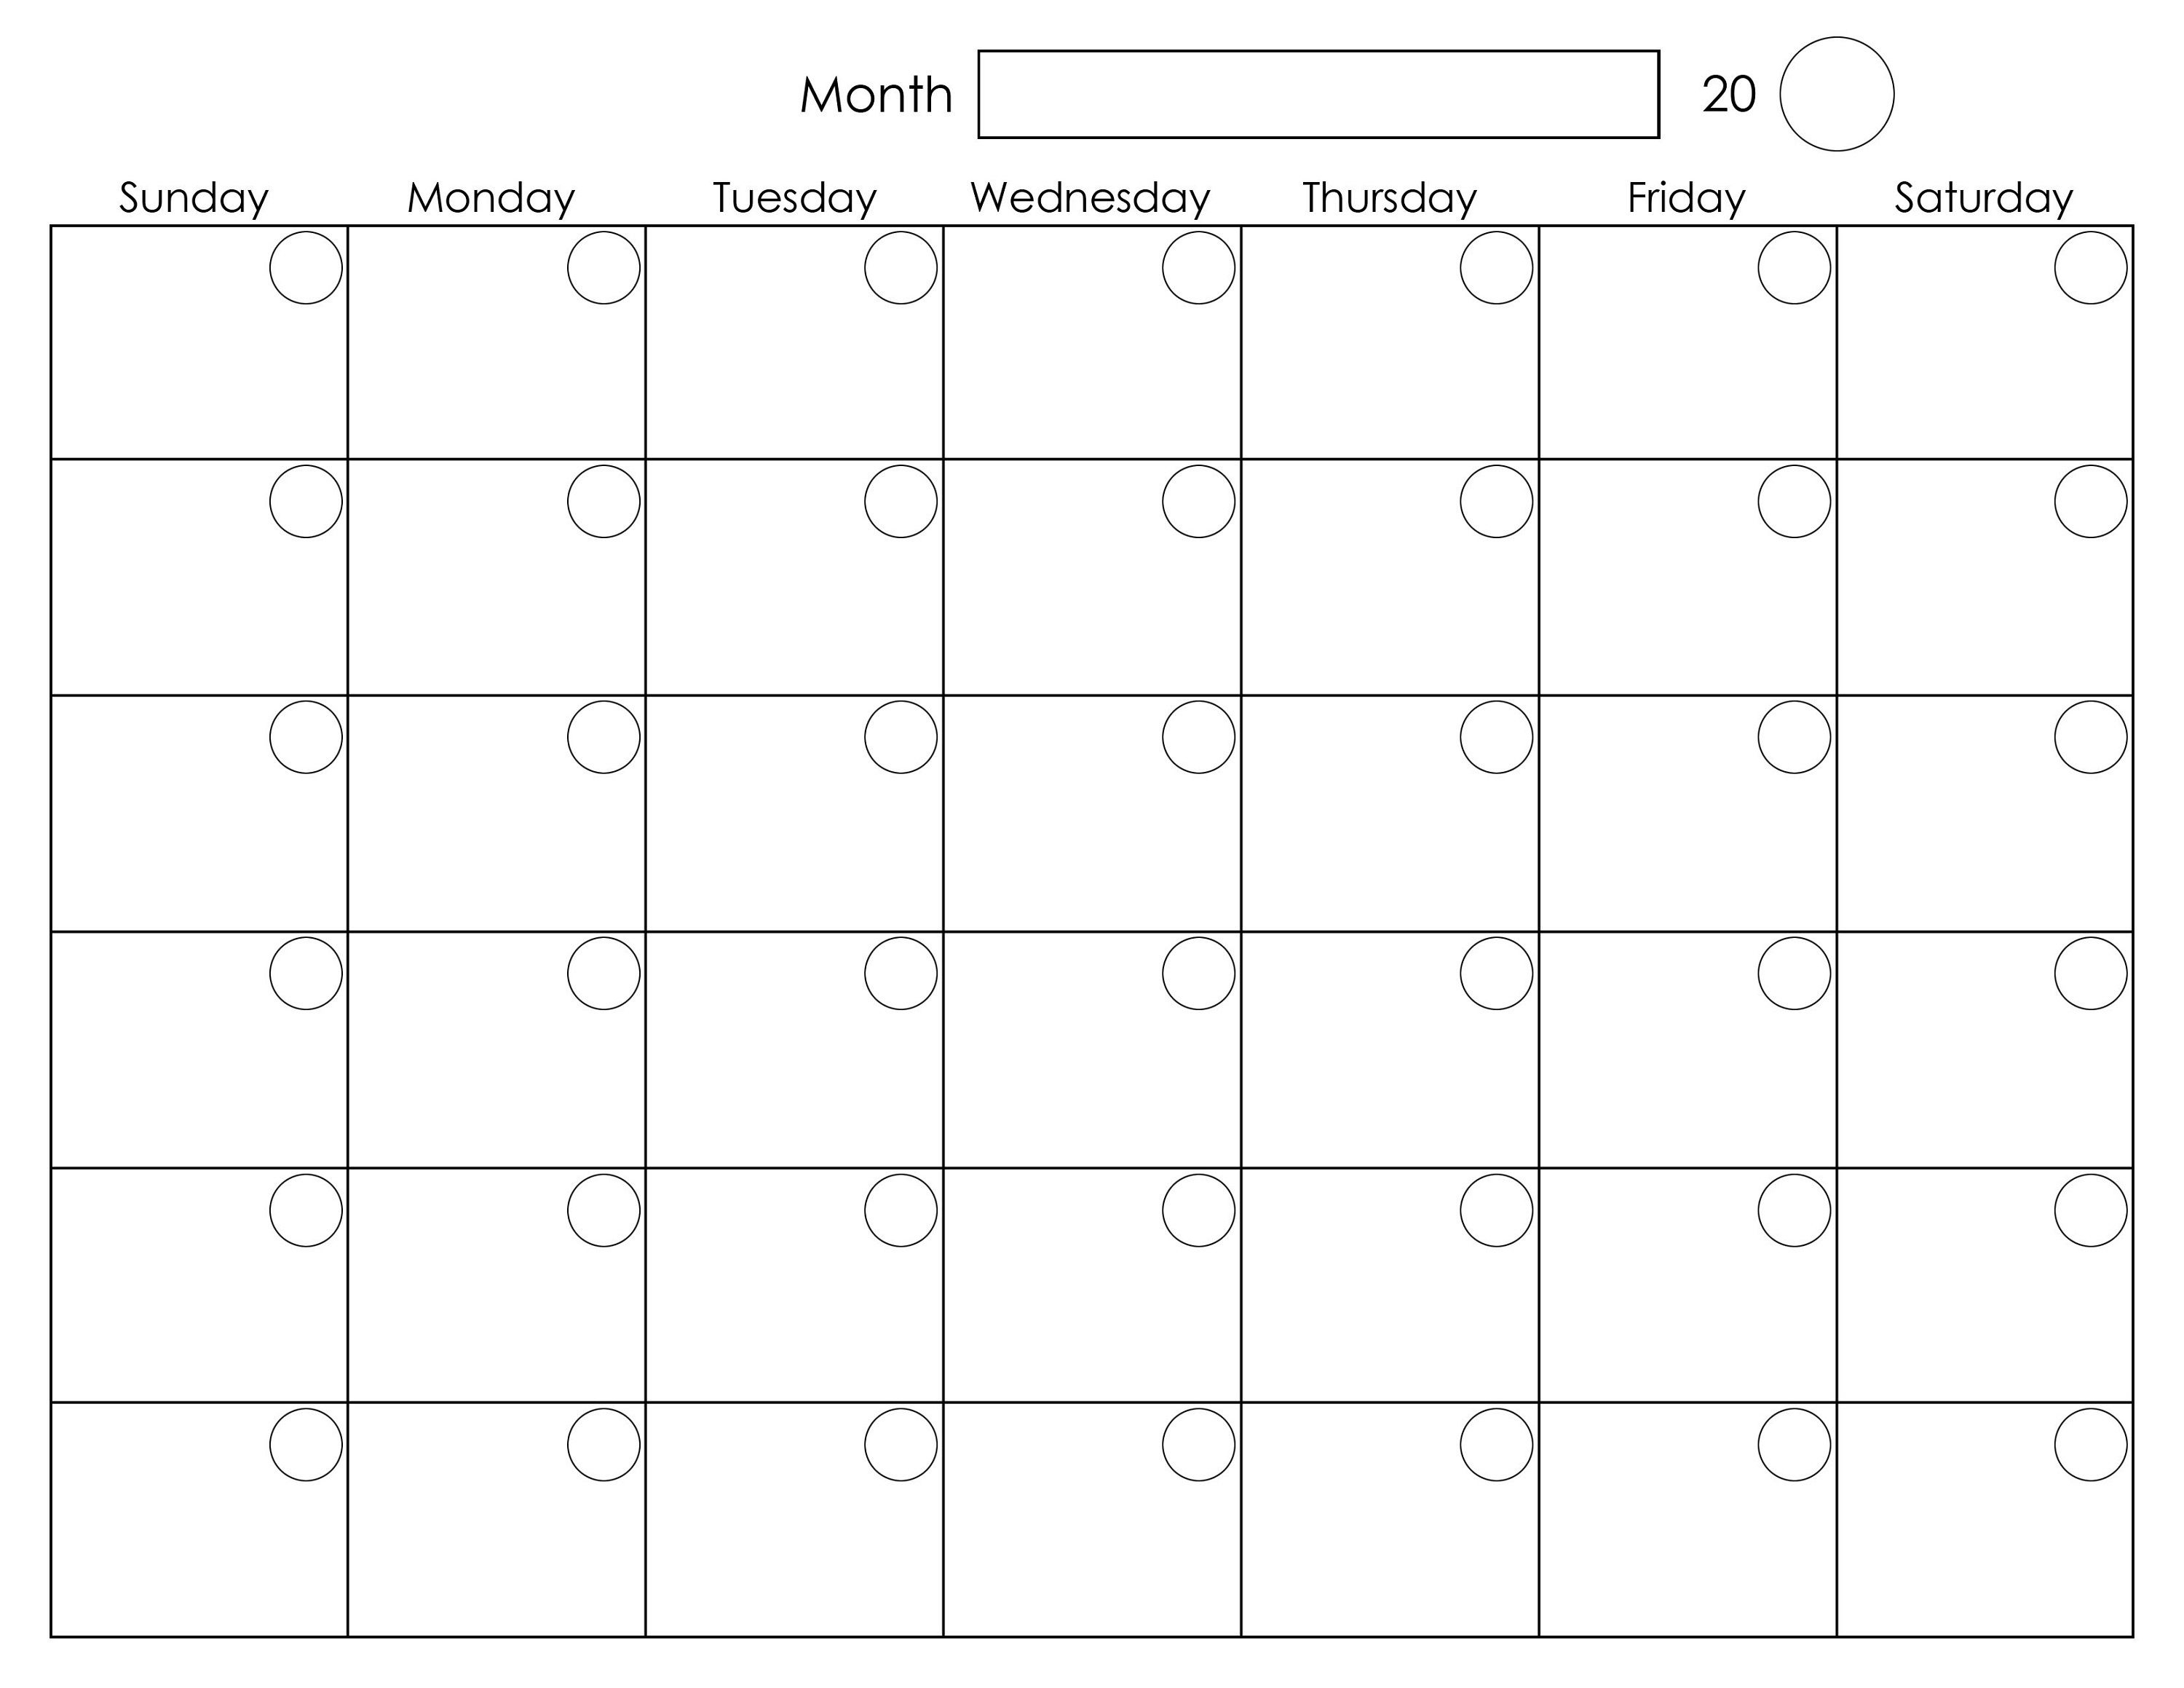 Printable Blank Monthly Calendar | Calendar Template Printable within Printable Monthly Calendar Templates